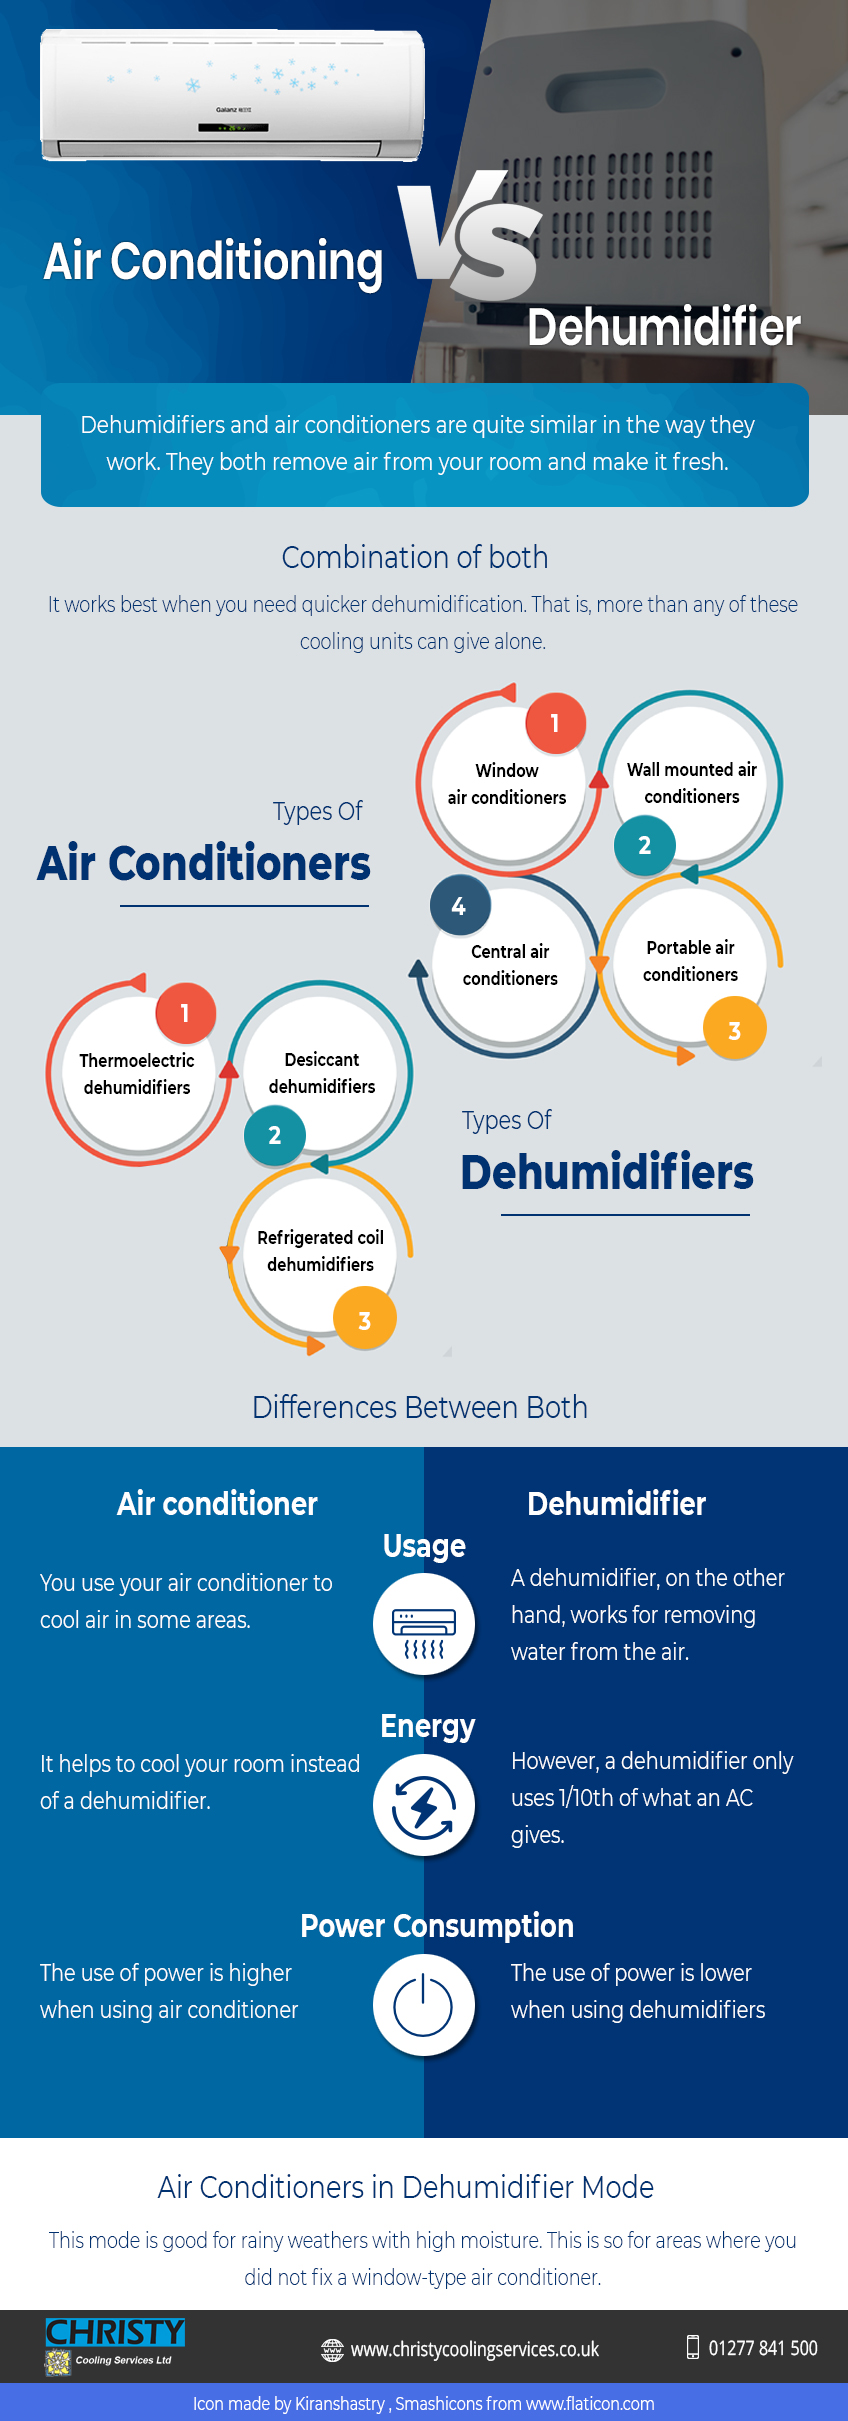 dehumidifier vs air conditioning infographic